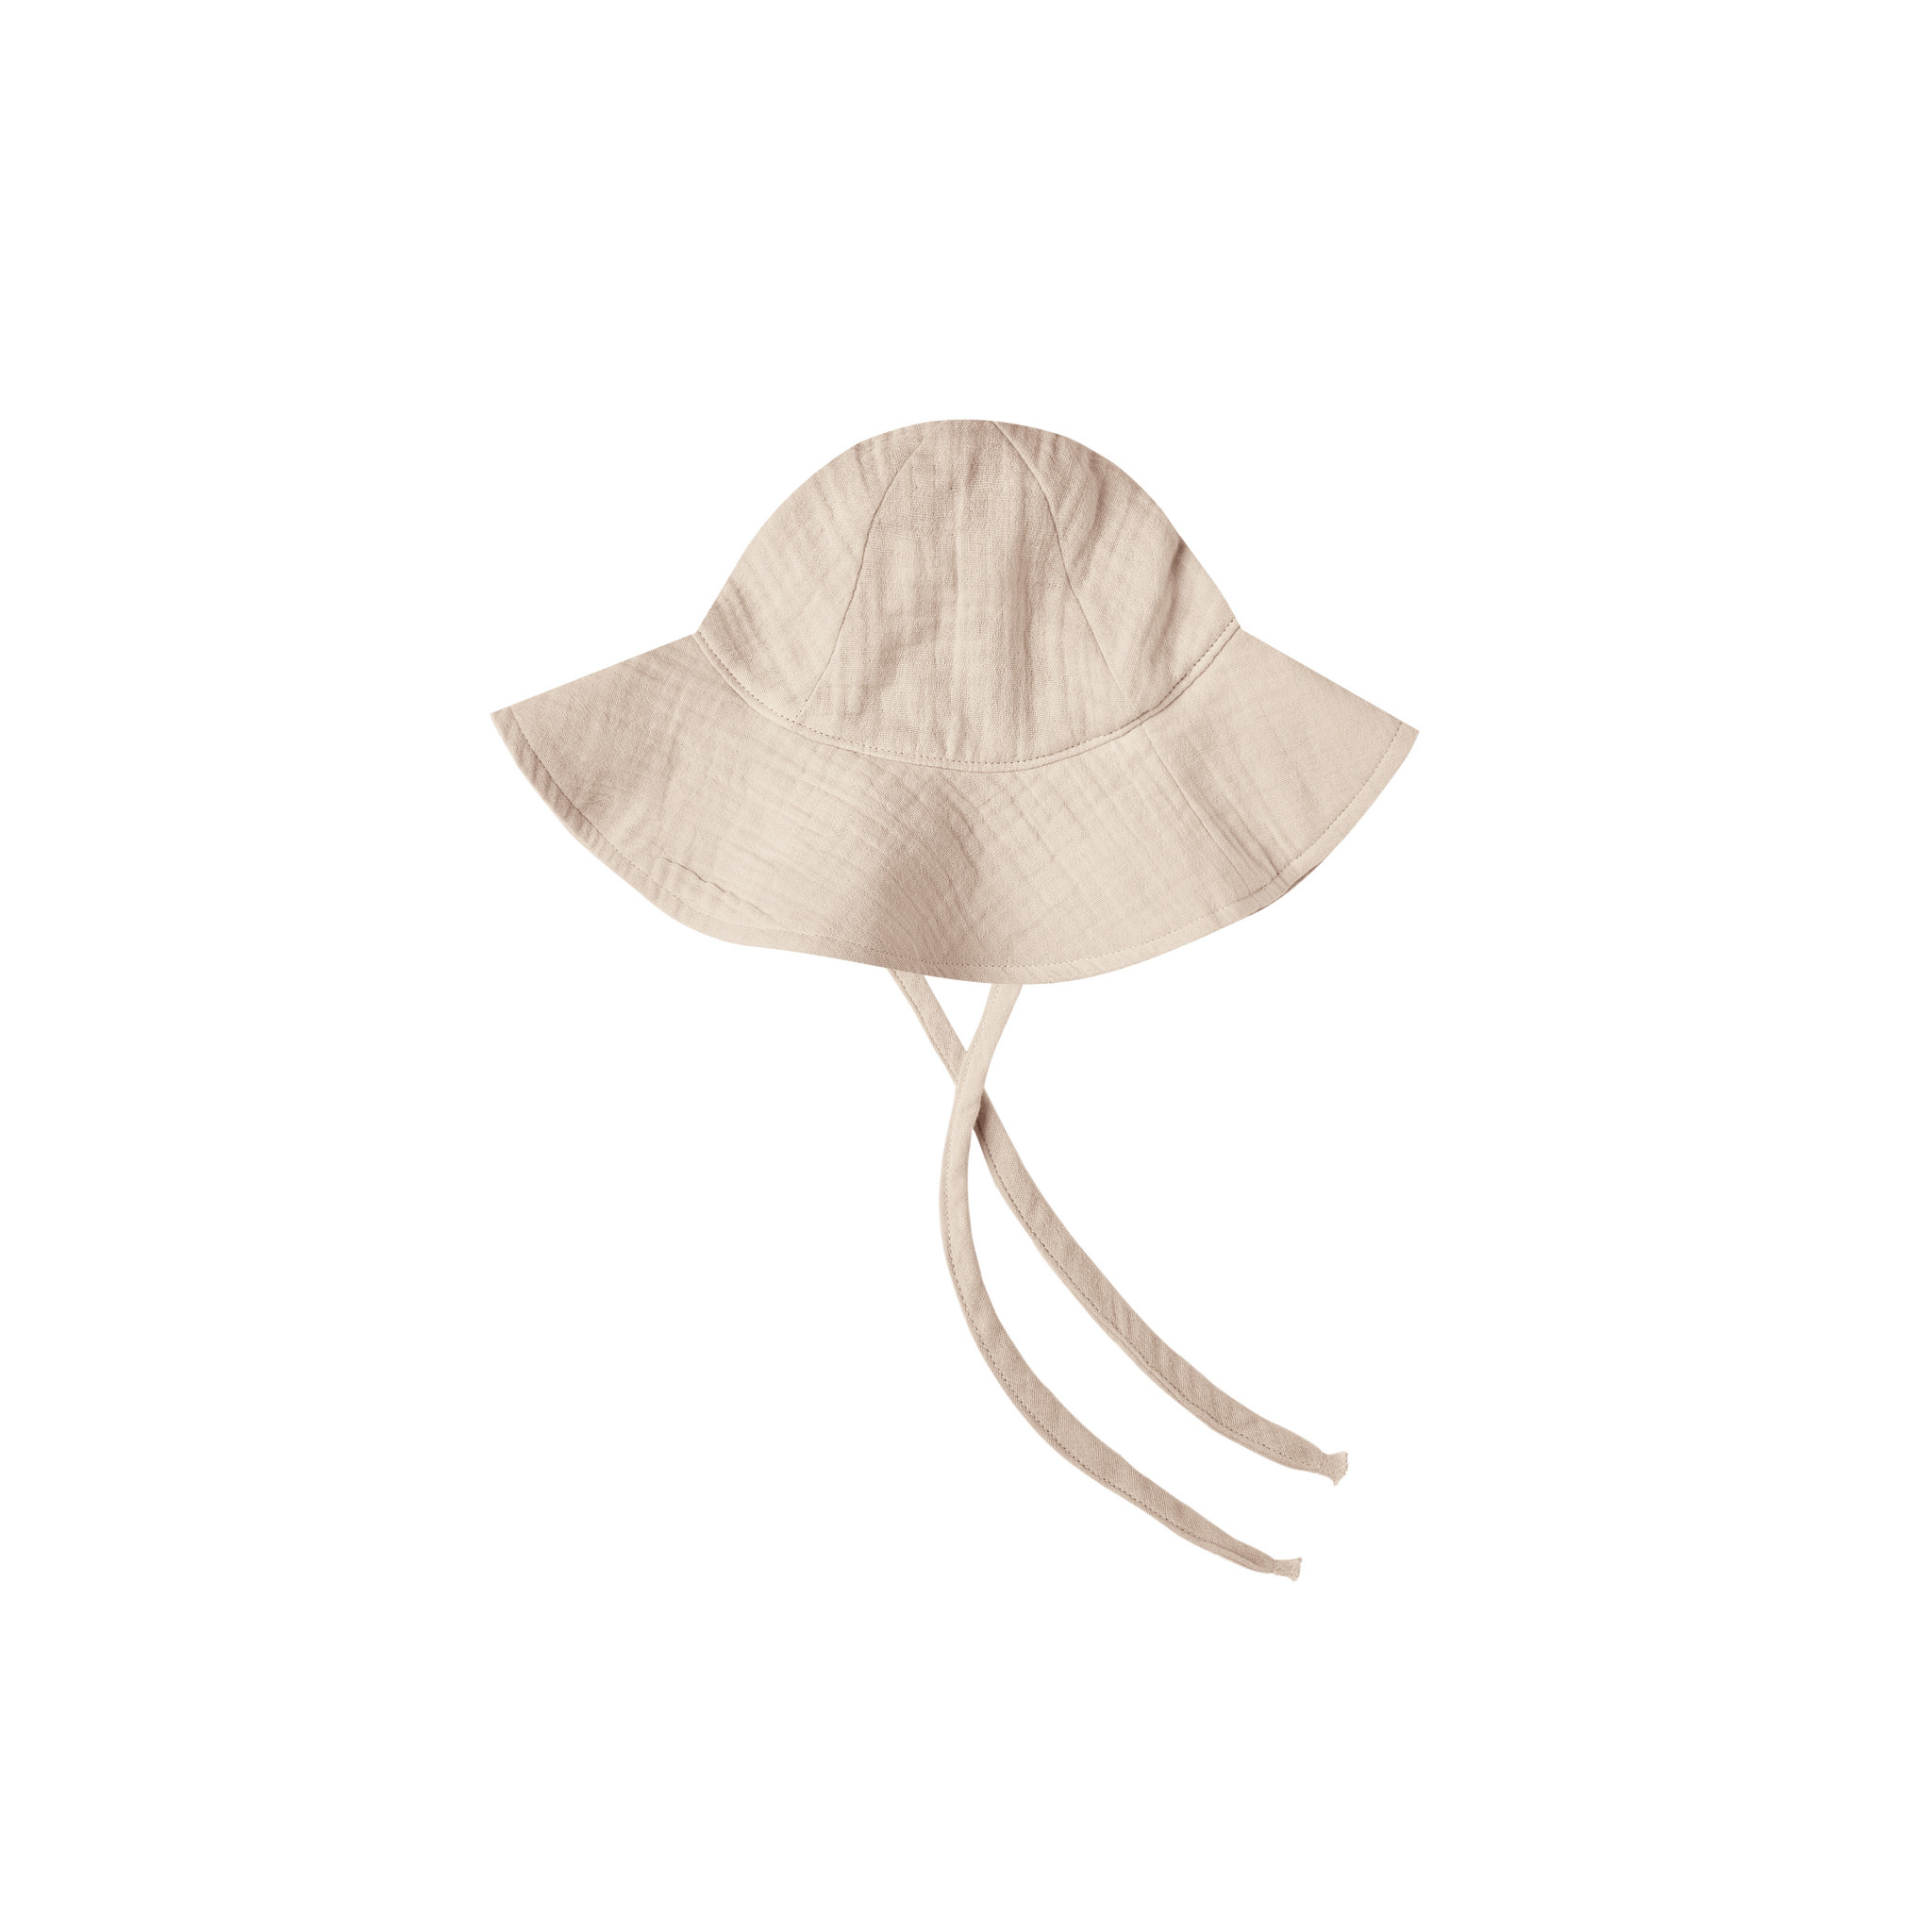 Rylee + Cru - RC Rylee + Cru Floppy Sun Hat in Shell